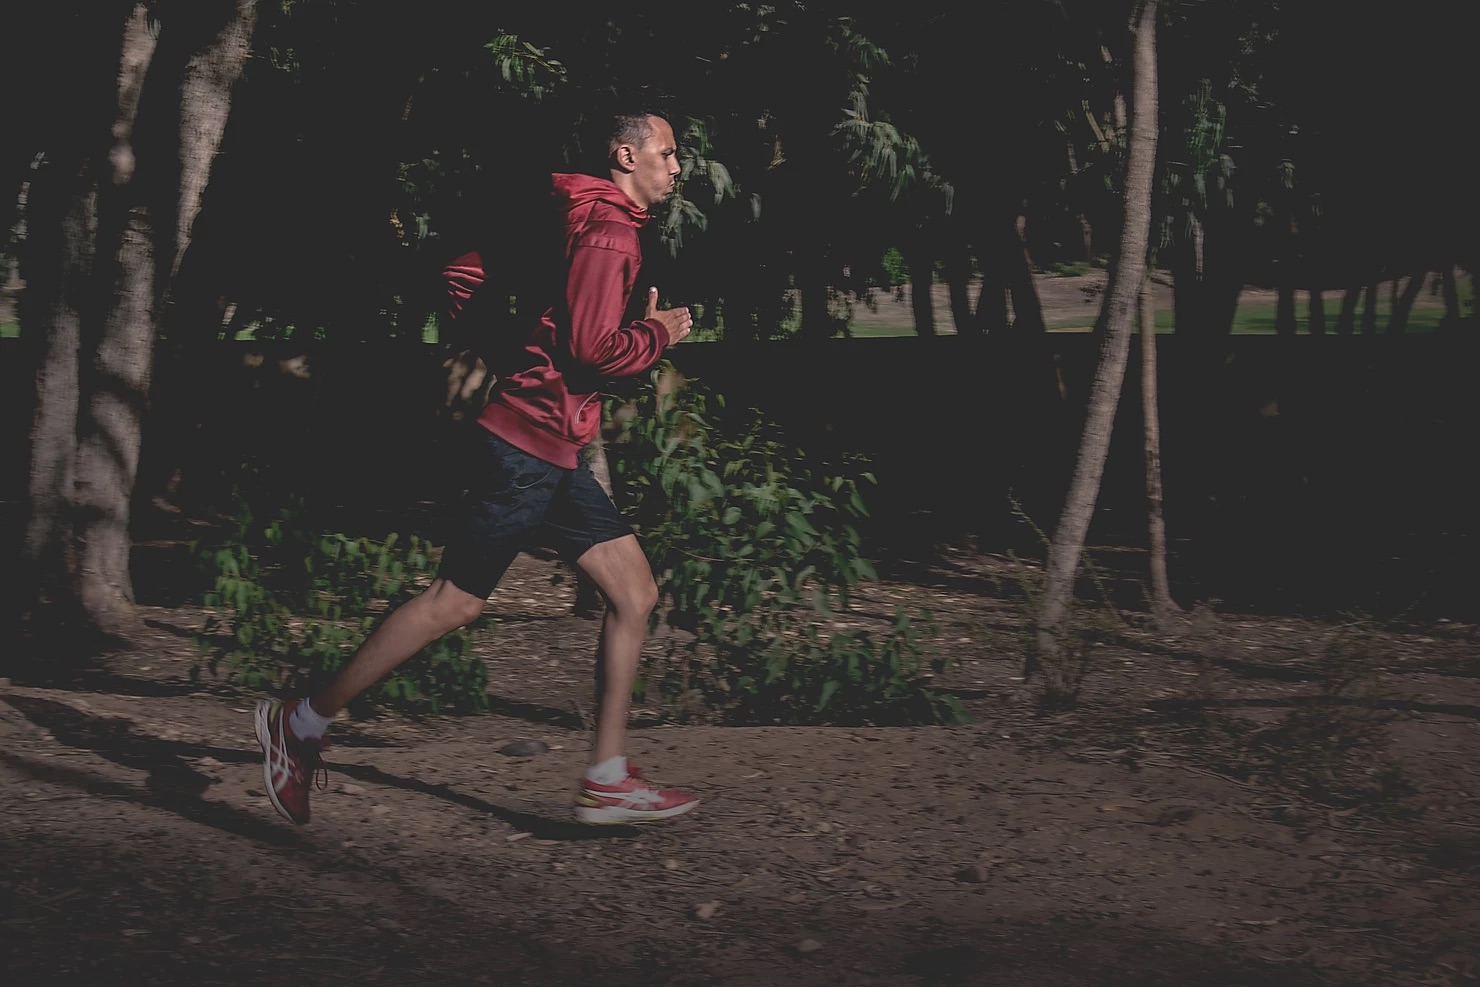 Duration, Speed or Frequency In Exercise May Not Matter